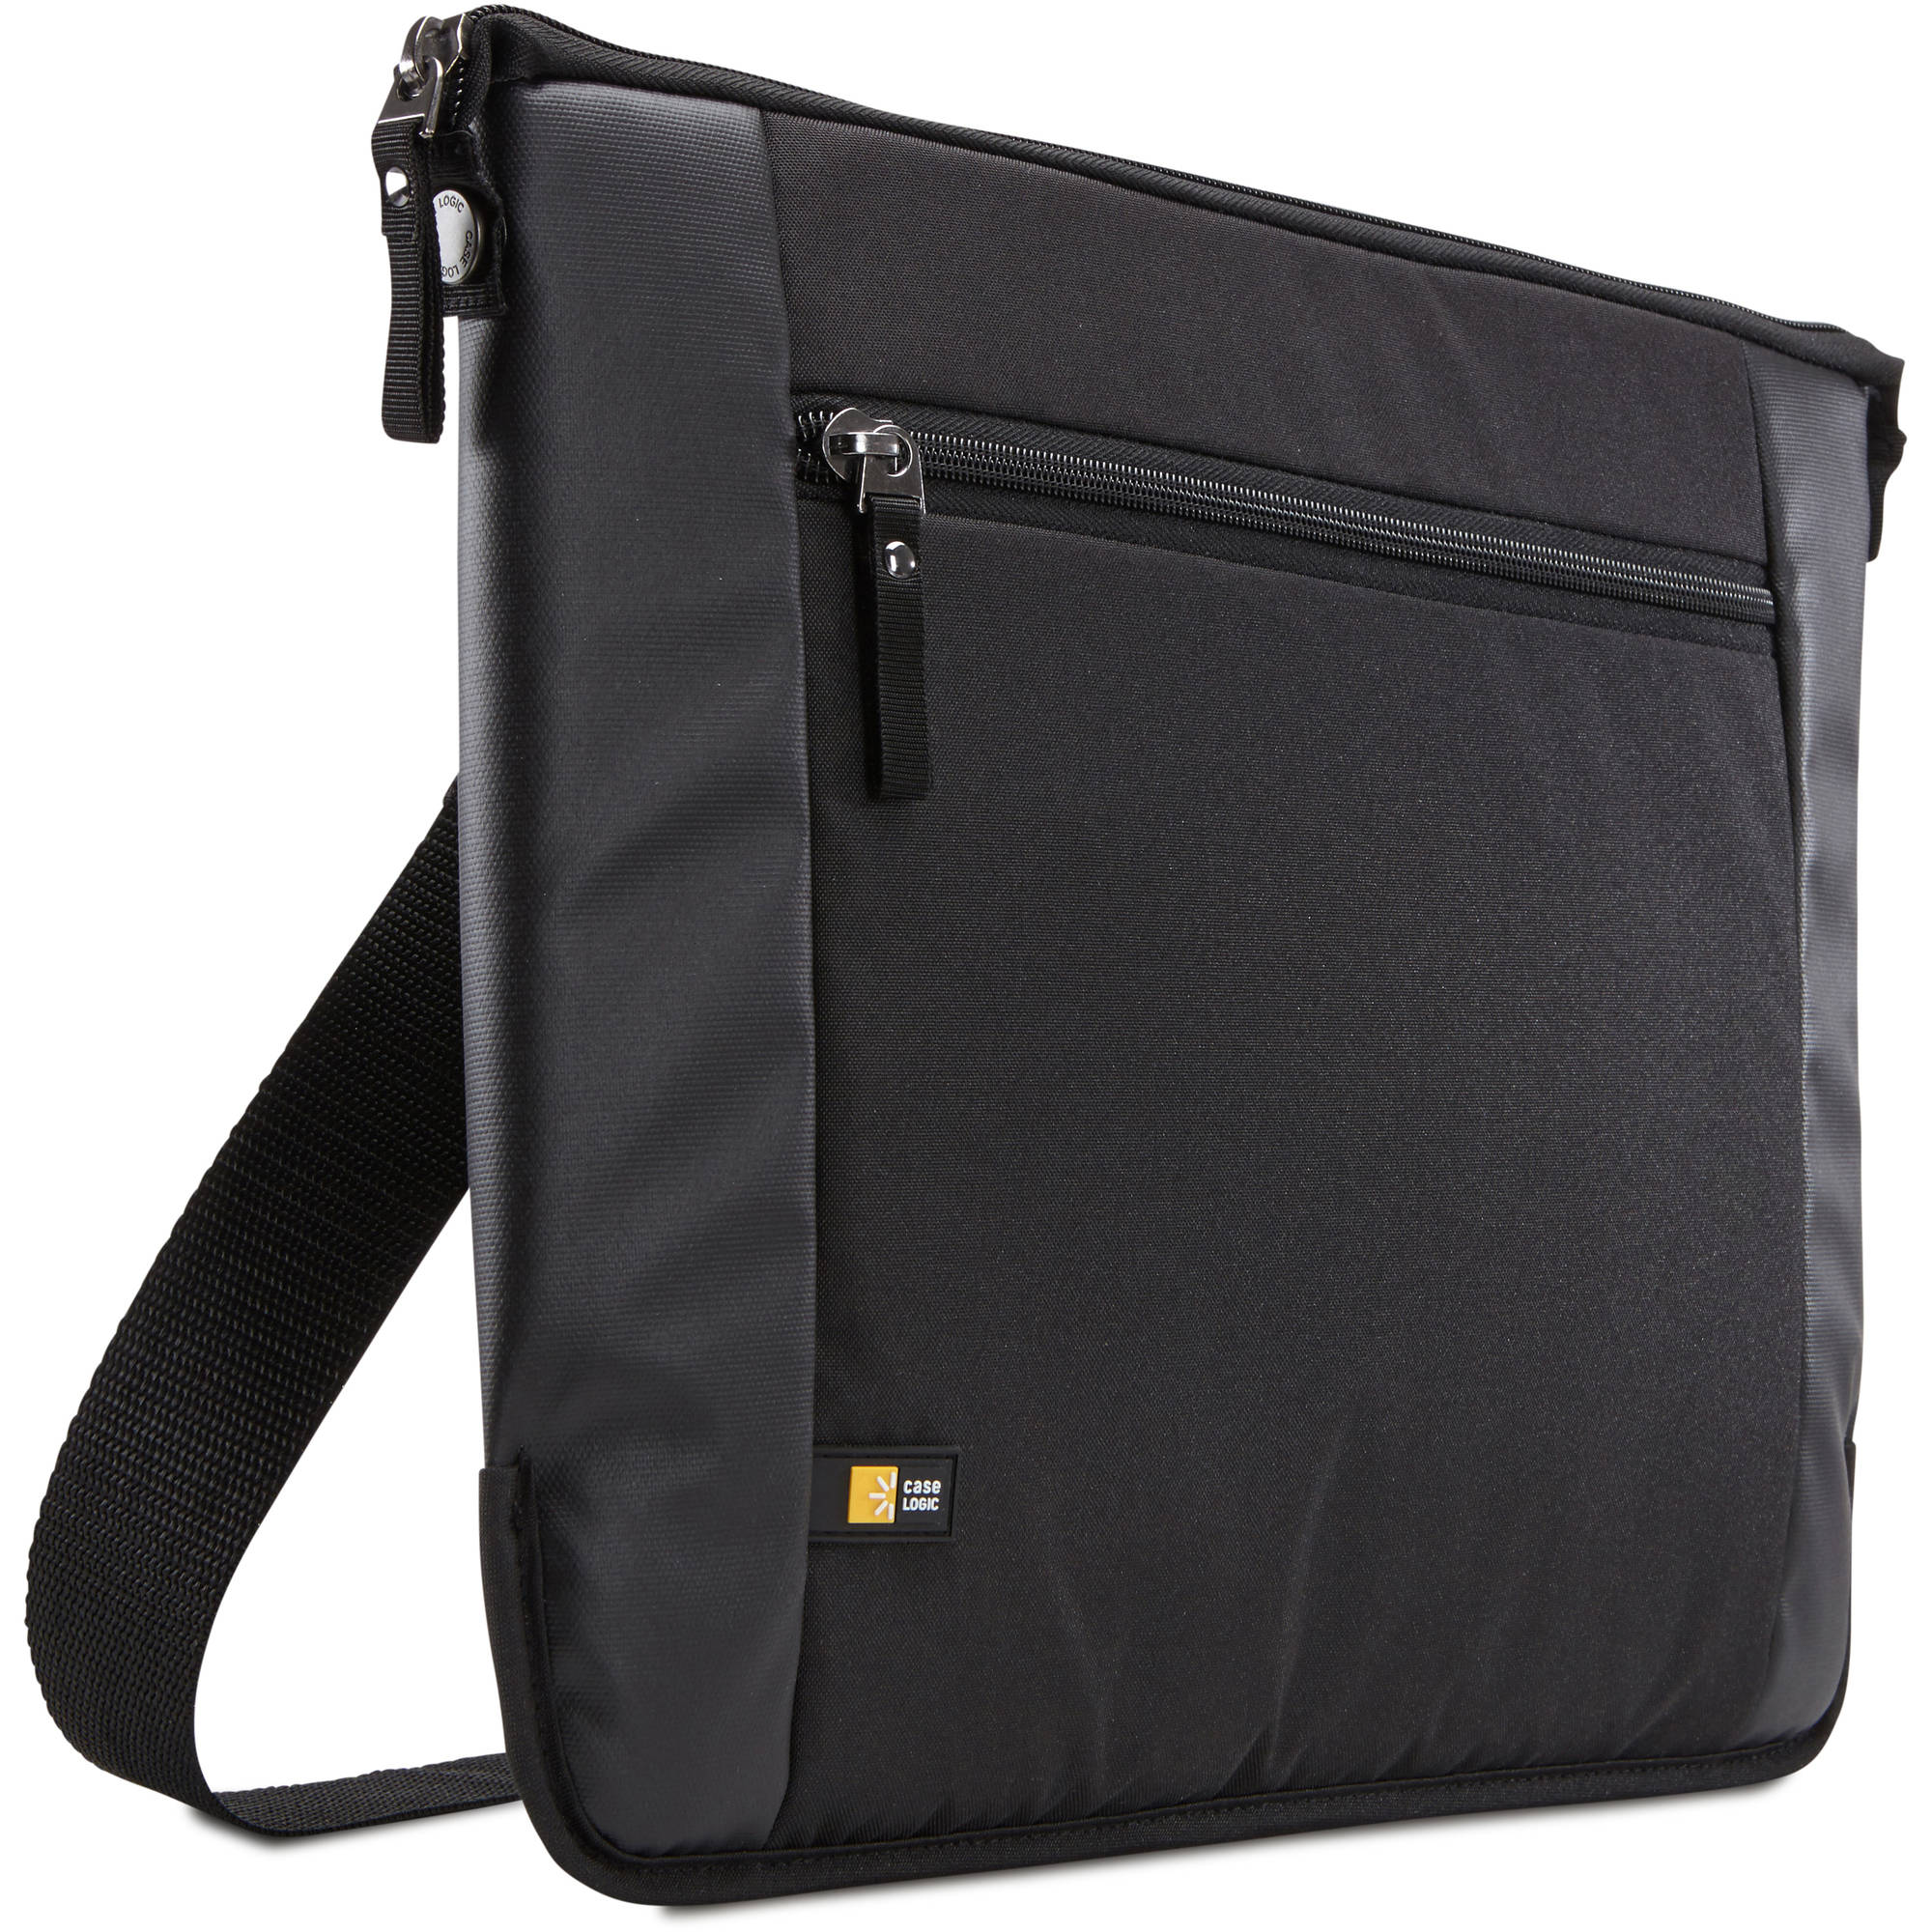 "Case Logic INT-114 Intrata Laptop Bag for 14"" Laptops"